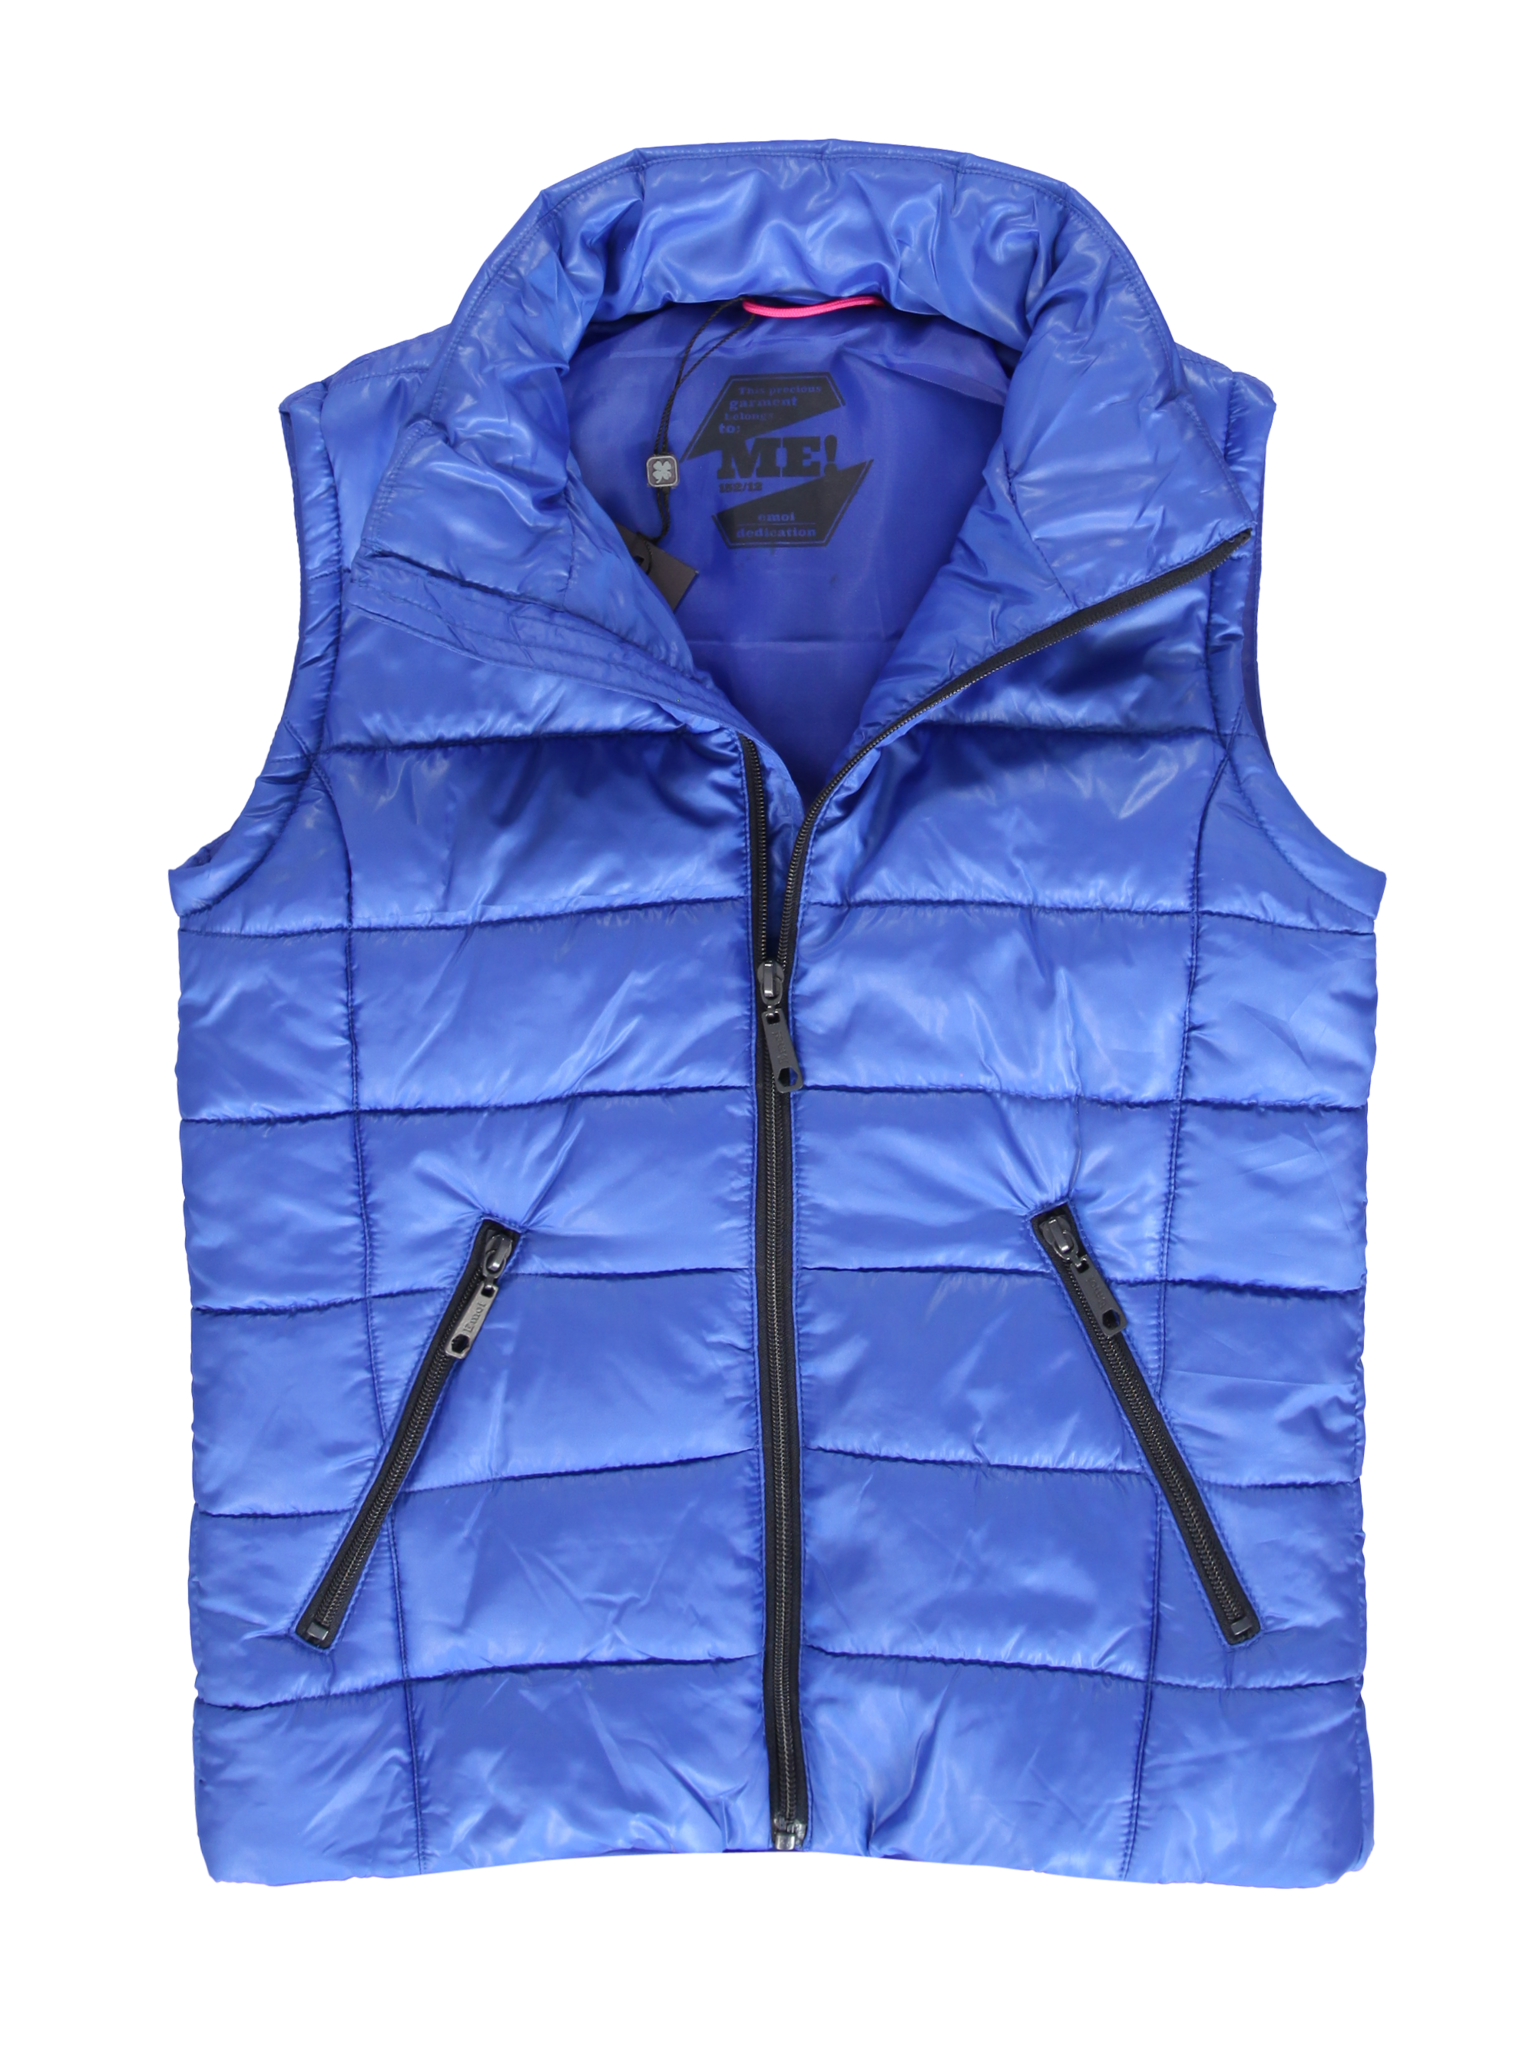 All Brands | Winterproducts Teen Girls | Bodywarmer | 12 pcs/box